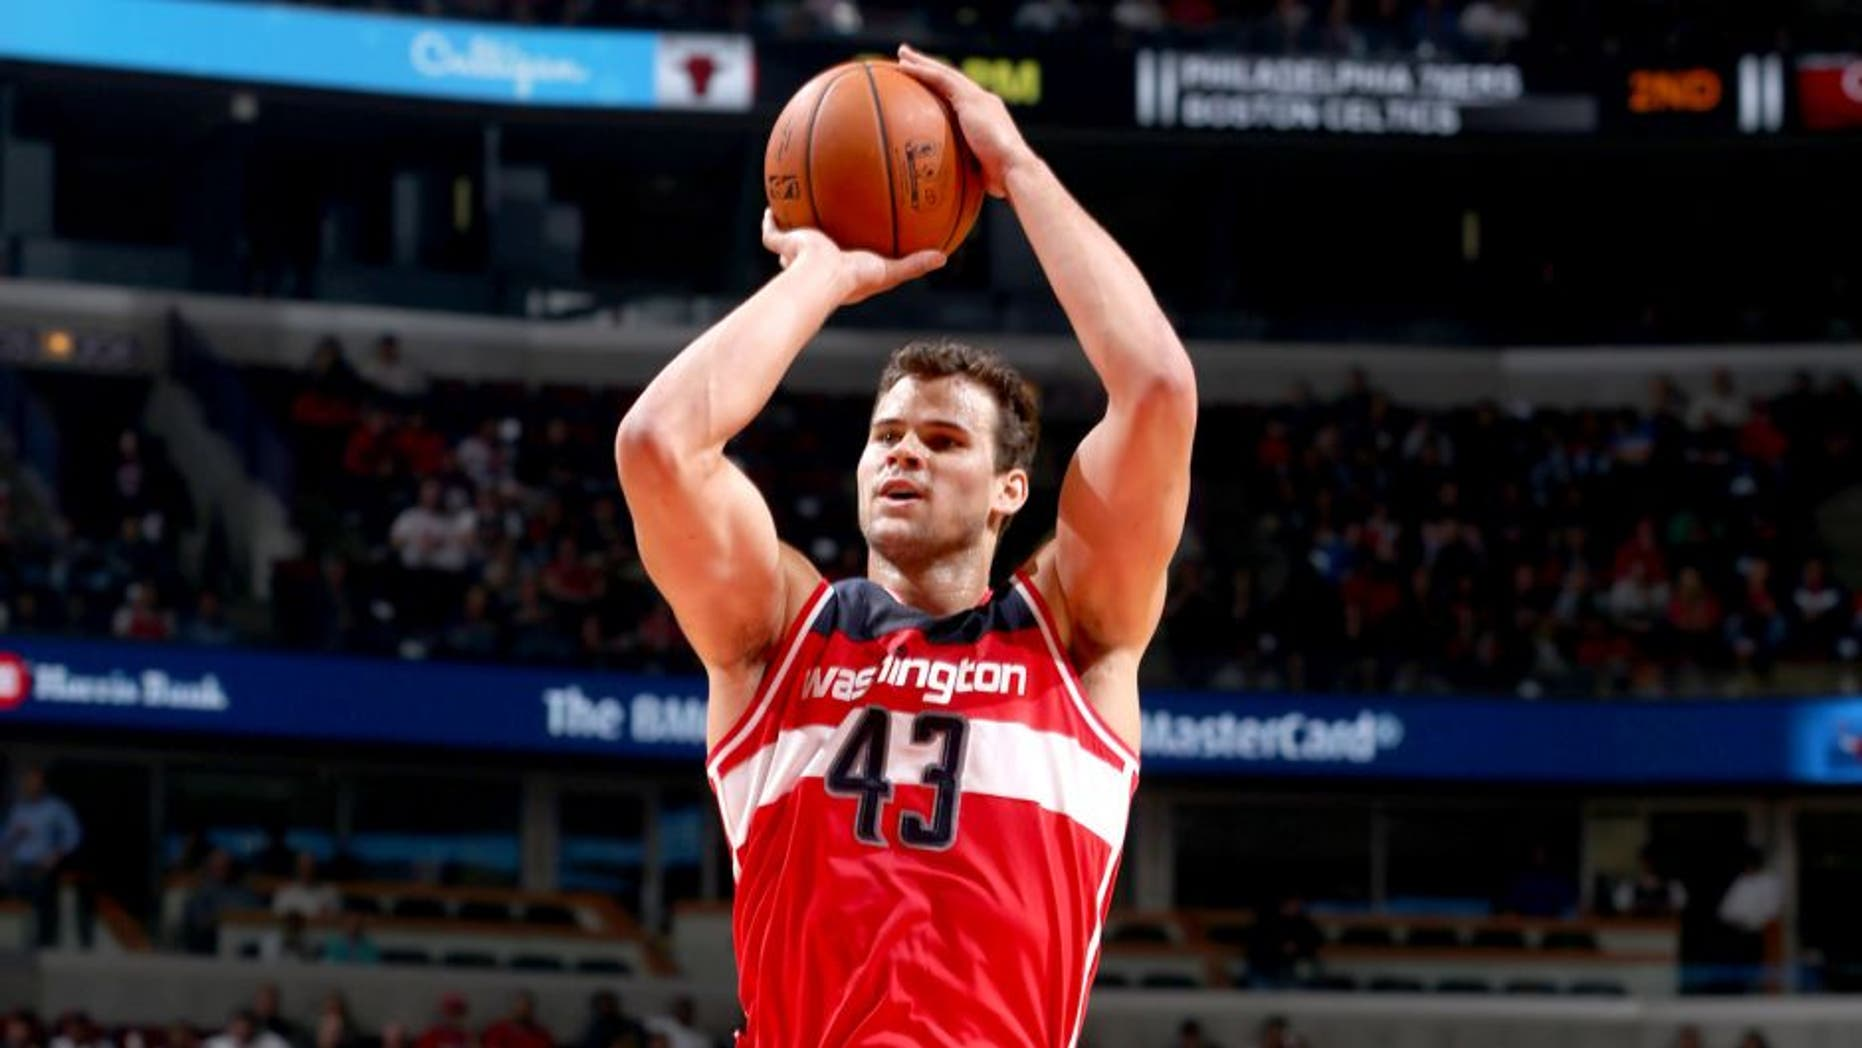 CHICAGO, IL - OCTOBER 6: Kris Humphries #43 of the Washington Wizards shoots against the Chicago Bulls on October 6, 2014 at the United Center in Chicago, Illinois. NOTE TO USER: User expressly acknowledges and agrees that, by downloading and or using this Photograph, user is consenting to the terms and conditions of the Getty Images License Agreement. Mandatory Copyright Notice: Copyright 2014 NBAE (Photo by Gary Dineen/NBAE via Getty Images)